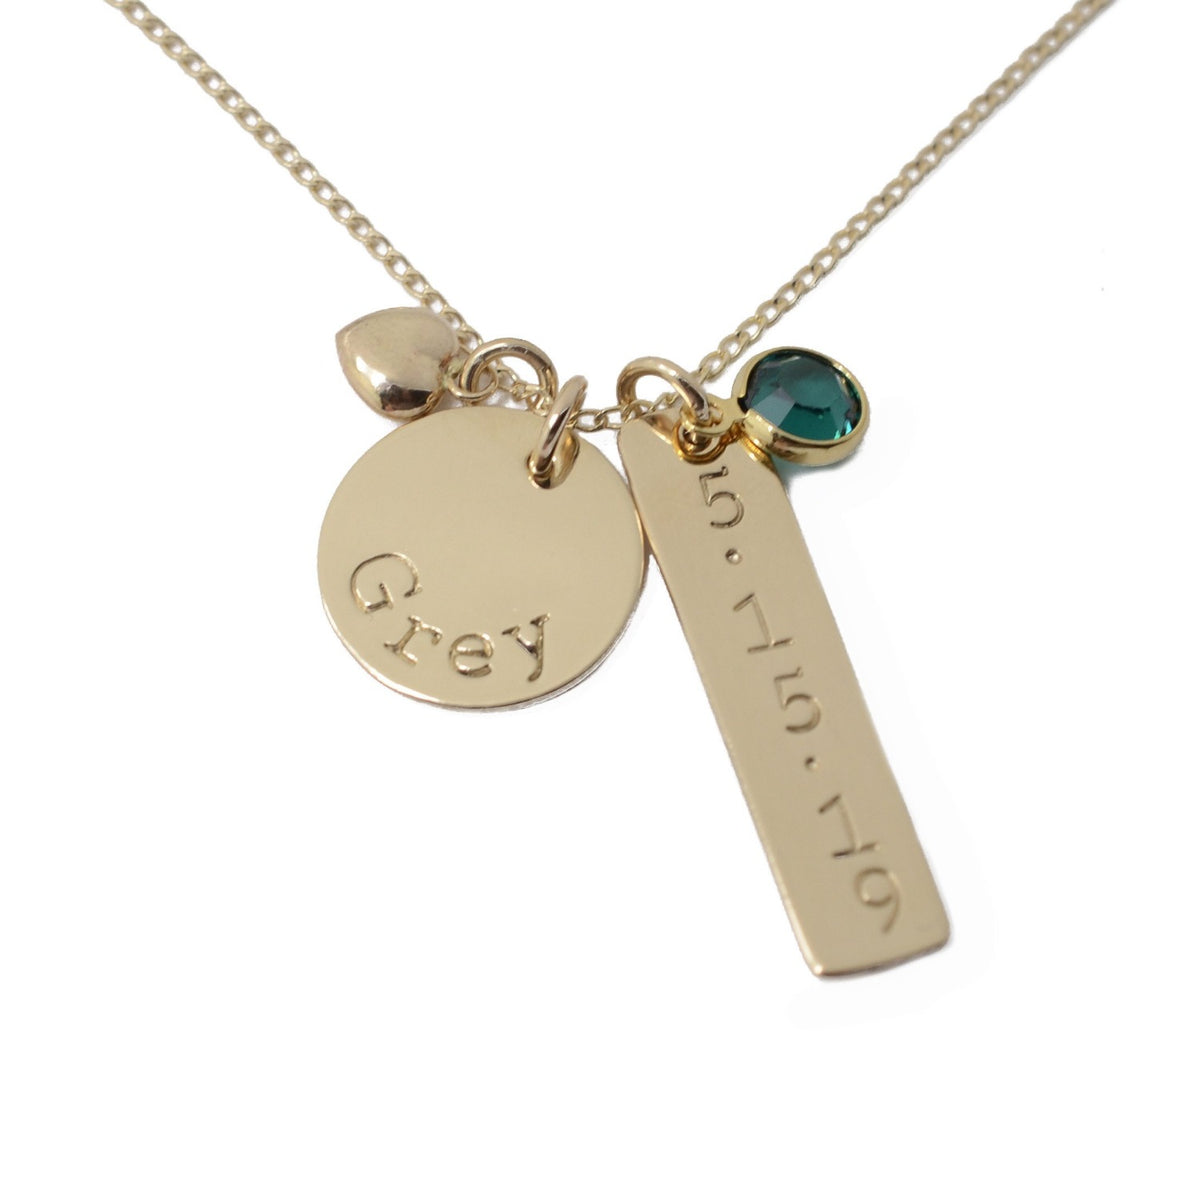 Disc & Tag Personalized Necklace - Gold Filled - Love It Personalized